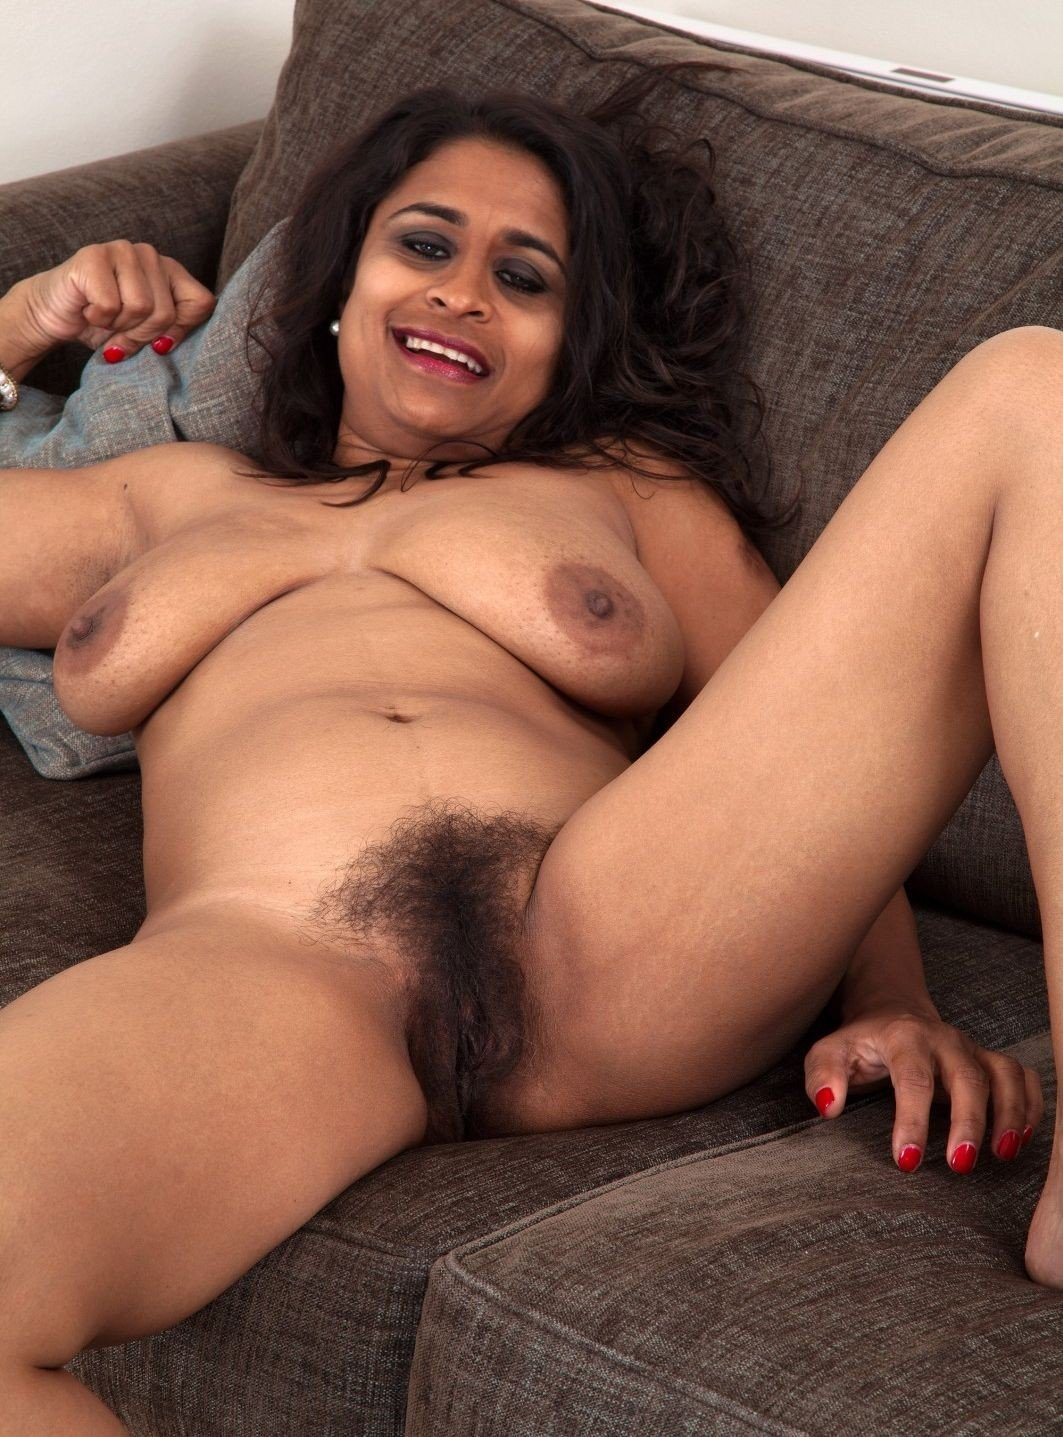 Nude Indian Girls Galleries